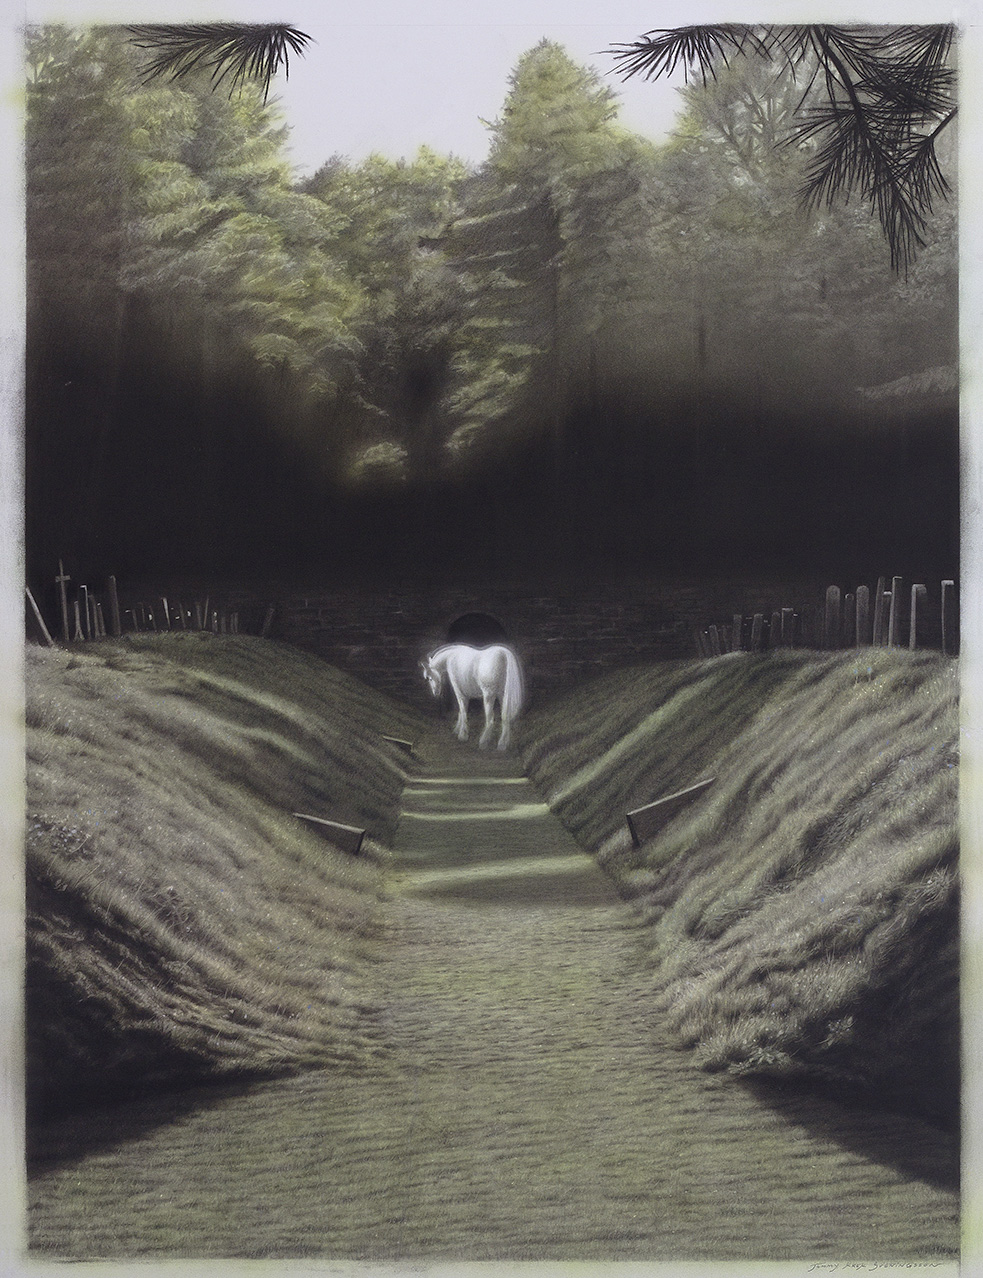 Tommy Sveningsson, Skogskyrkogården, 2016, ink, charcoal on paper, 107 x 81 cm